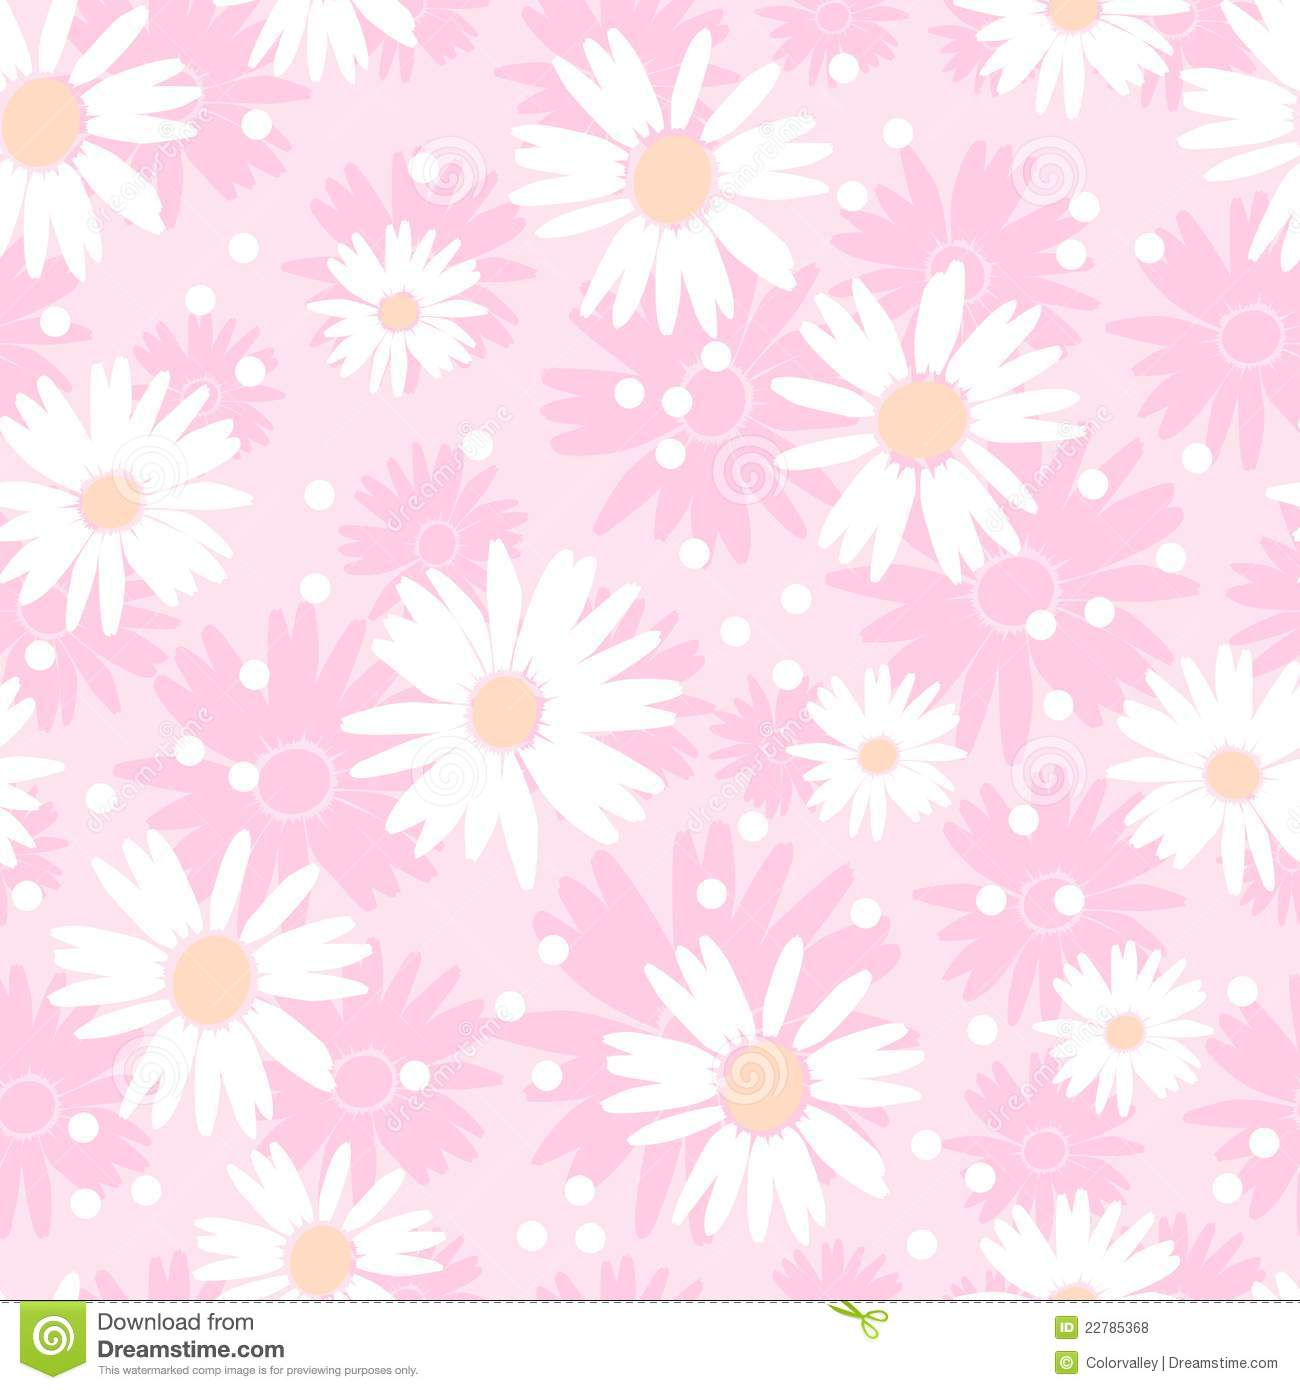 Cute Pineapple Big Wallpapers Seamless Cute Flower Background Royalty Free Stock Photos